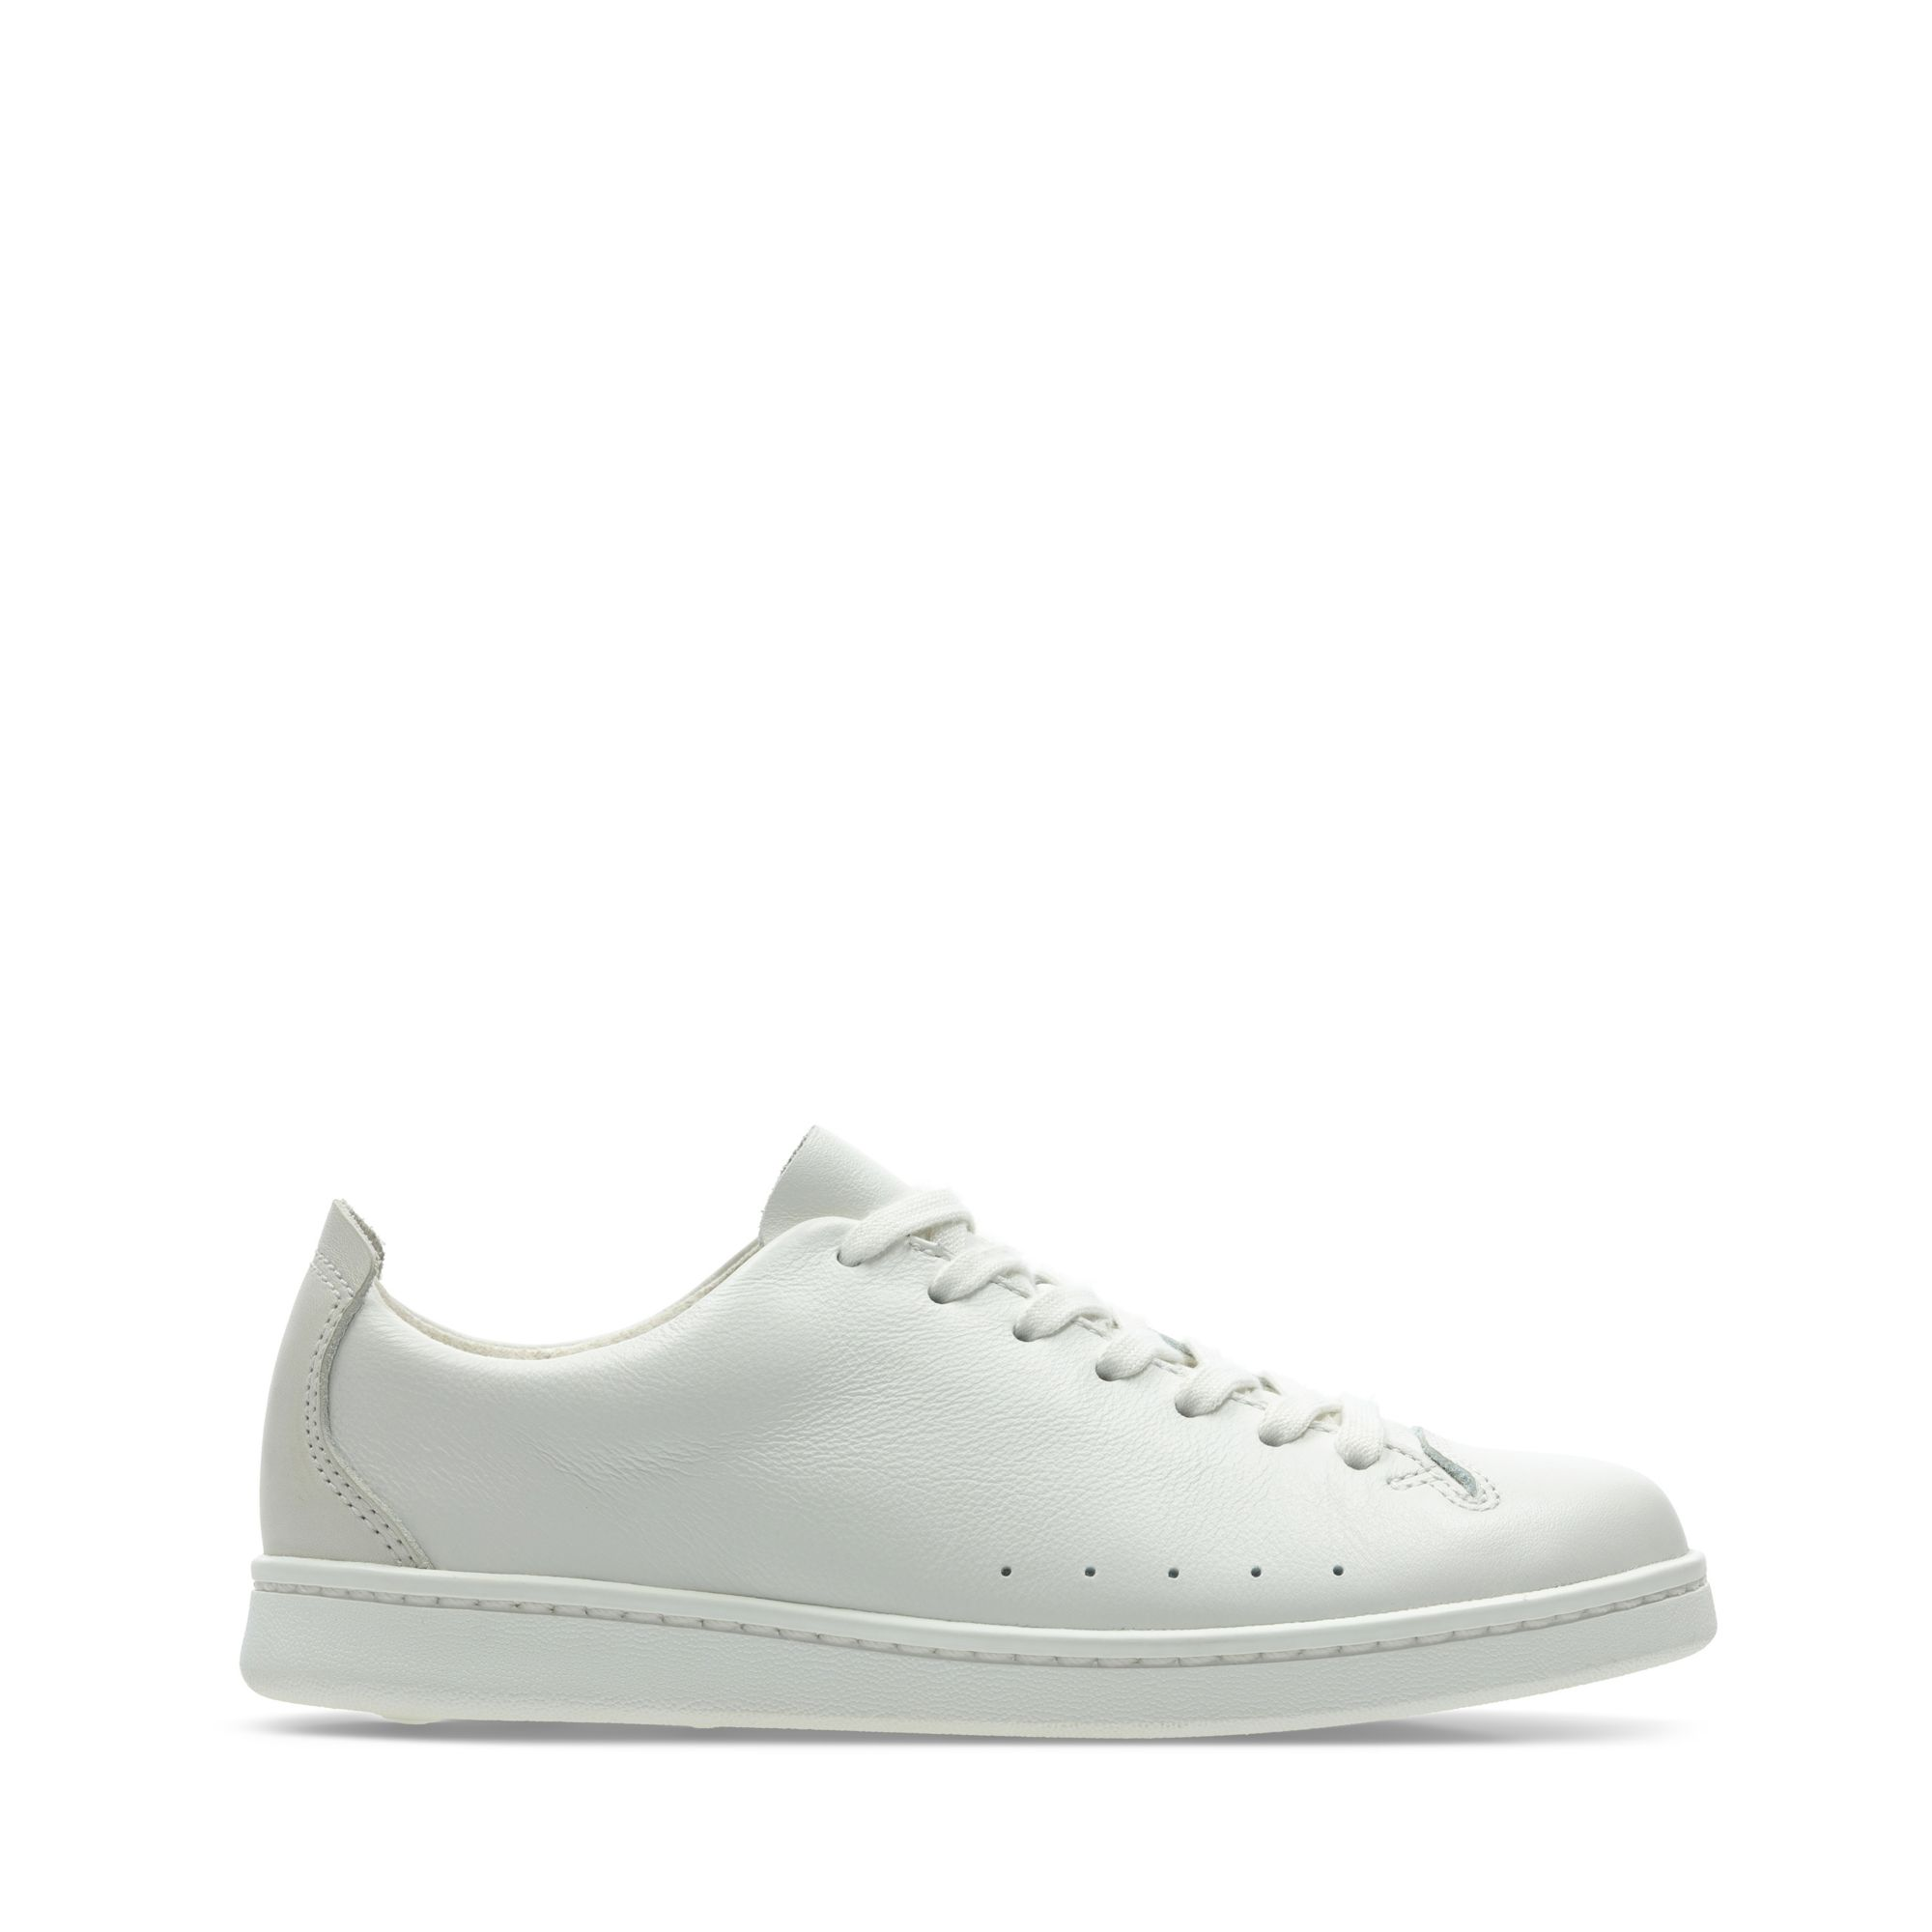 Clarks Nate Lace - White Leather - Childrens 1.5